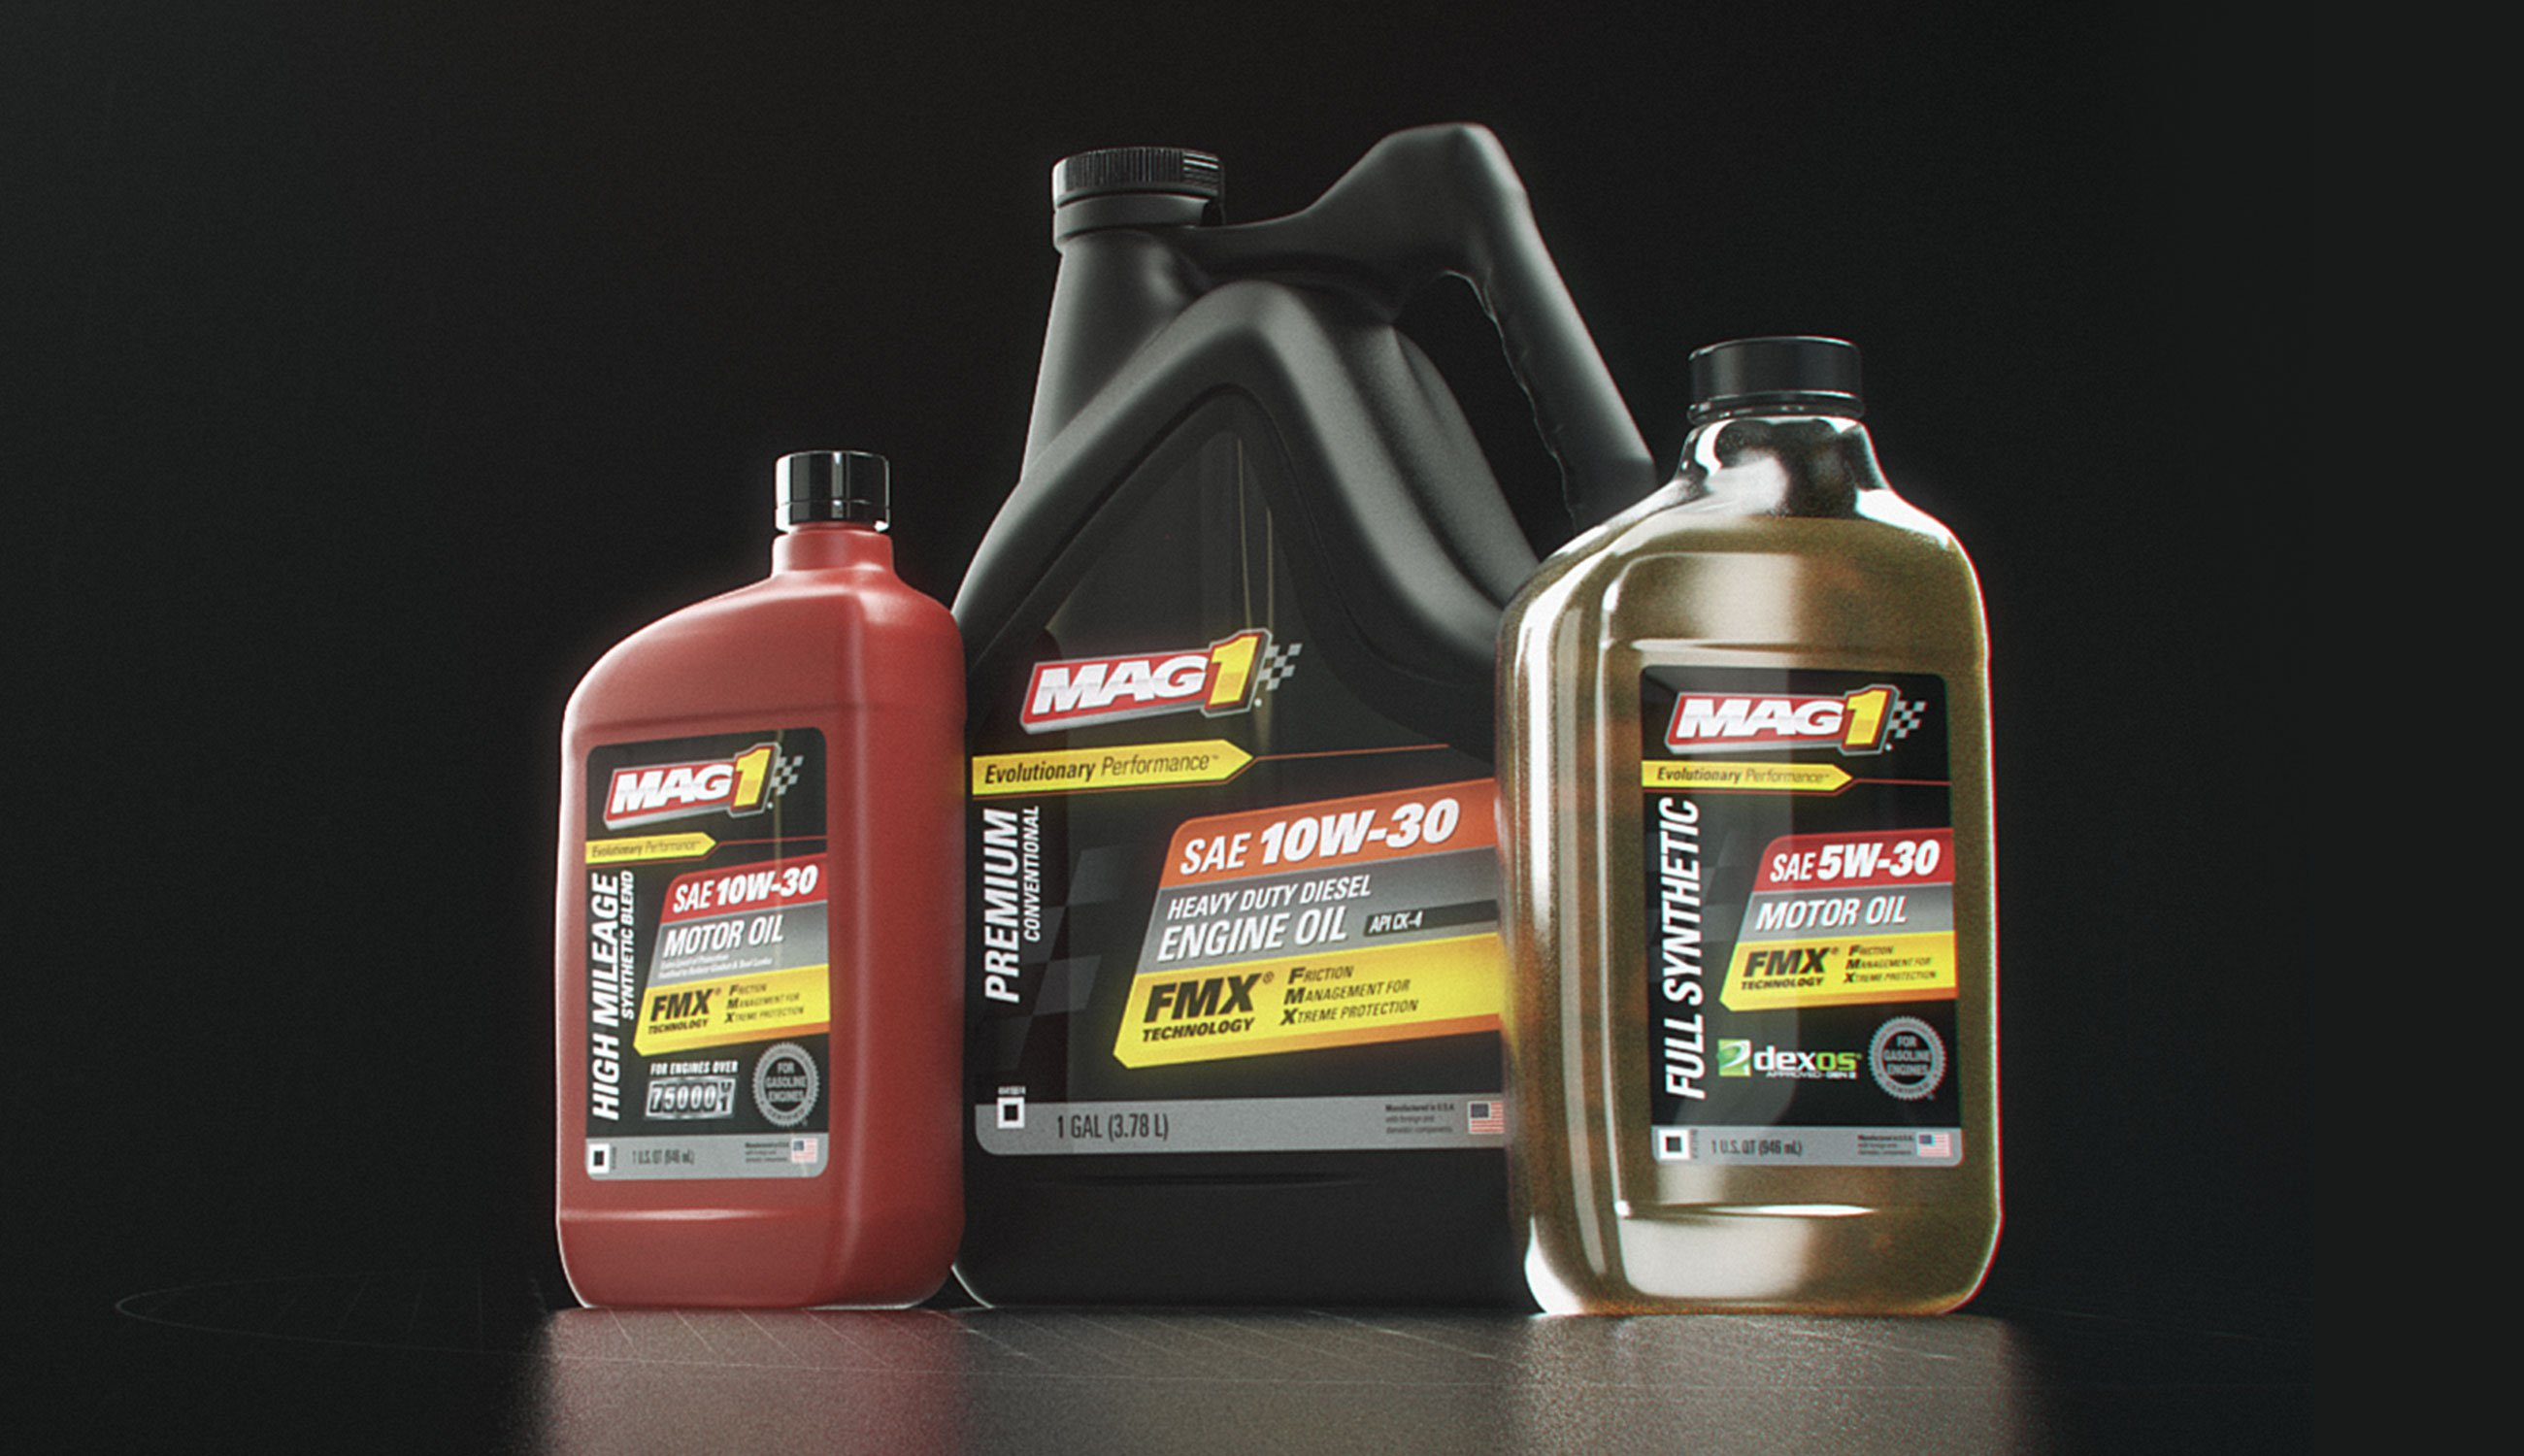 Why Mag 1 offers the Best Motor Oil Products - Mag 1